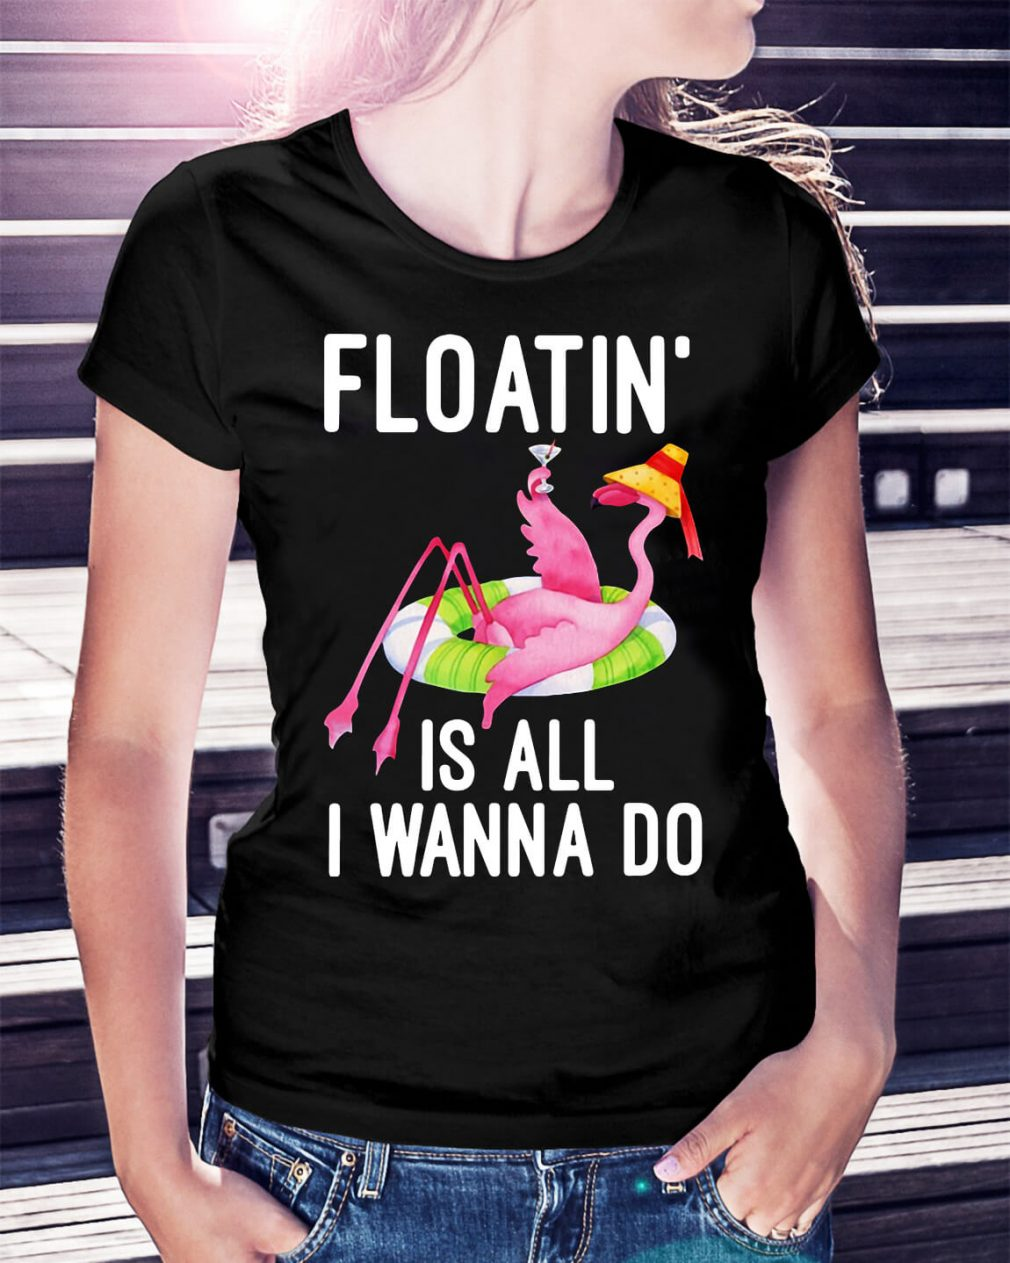 Floatin' is all I wanna do shirt